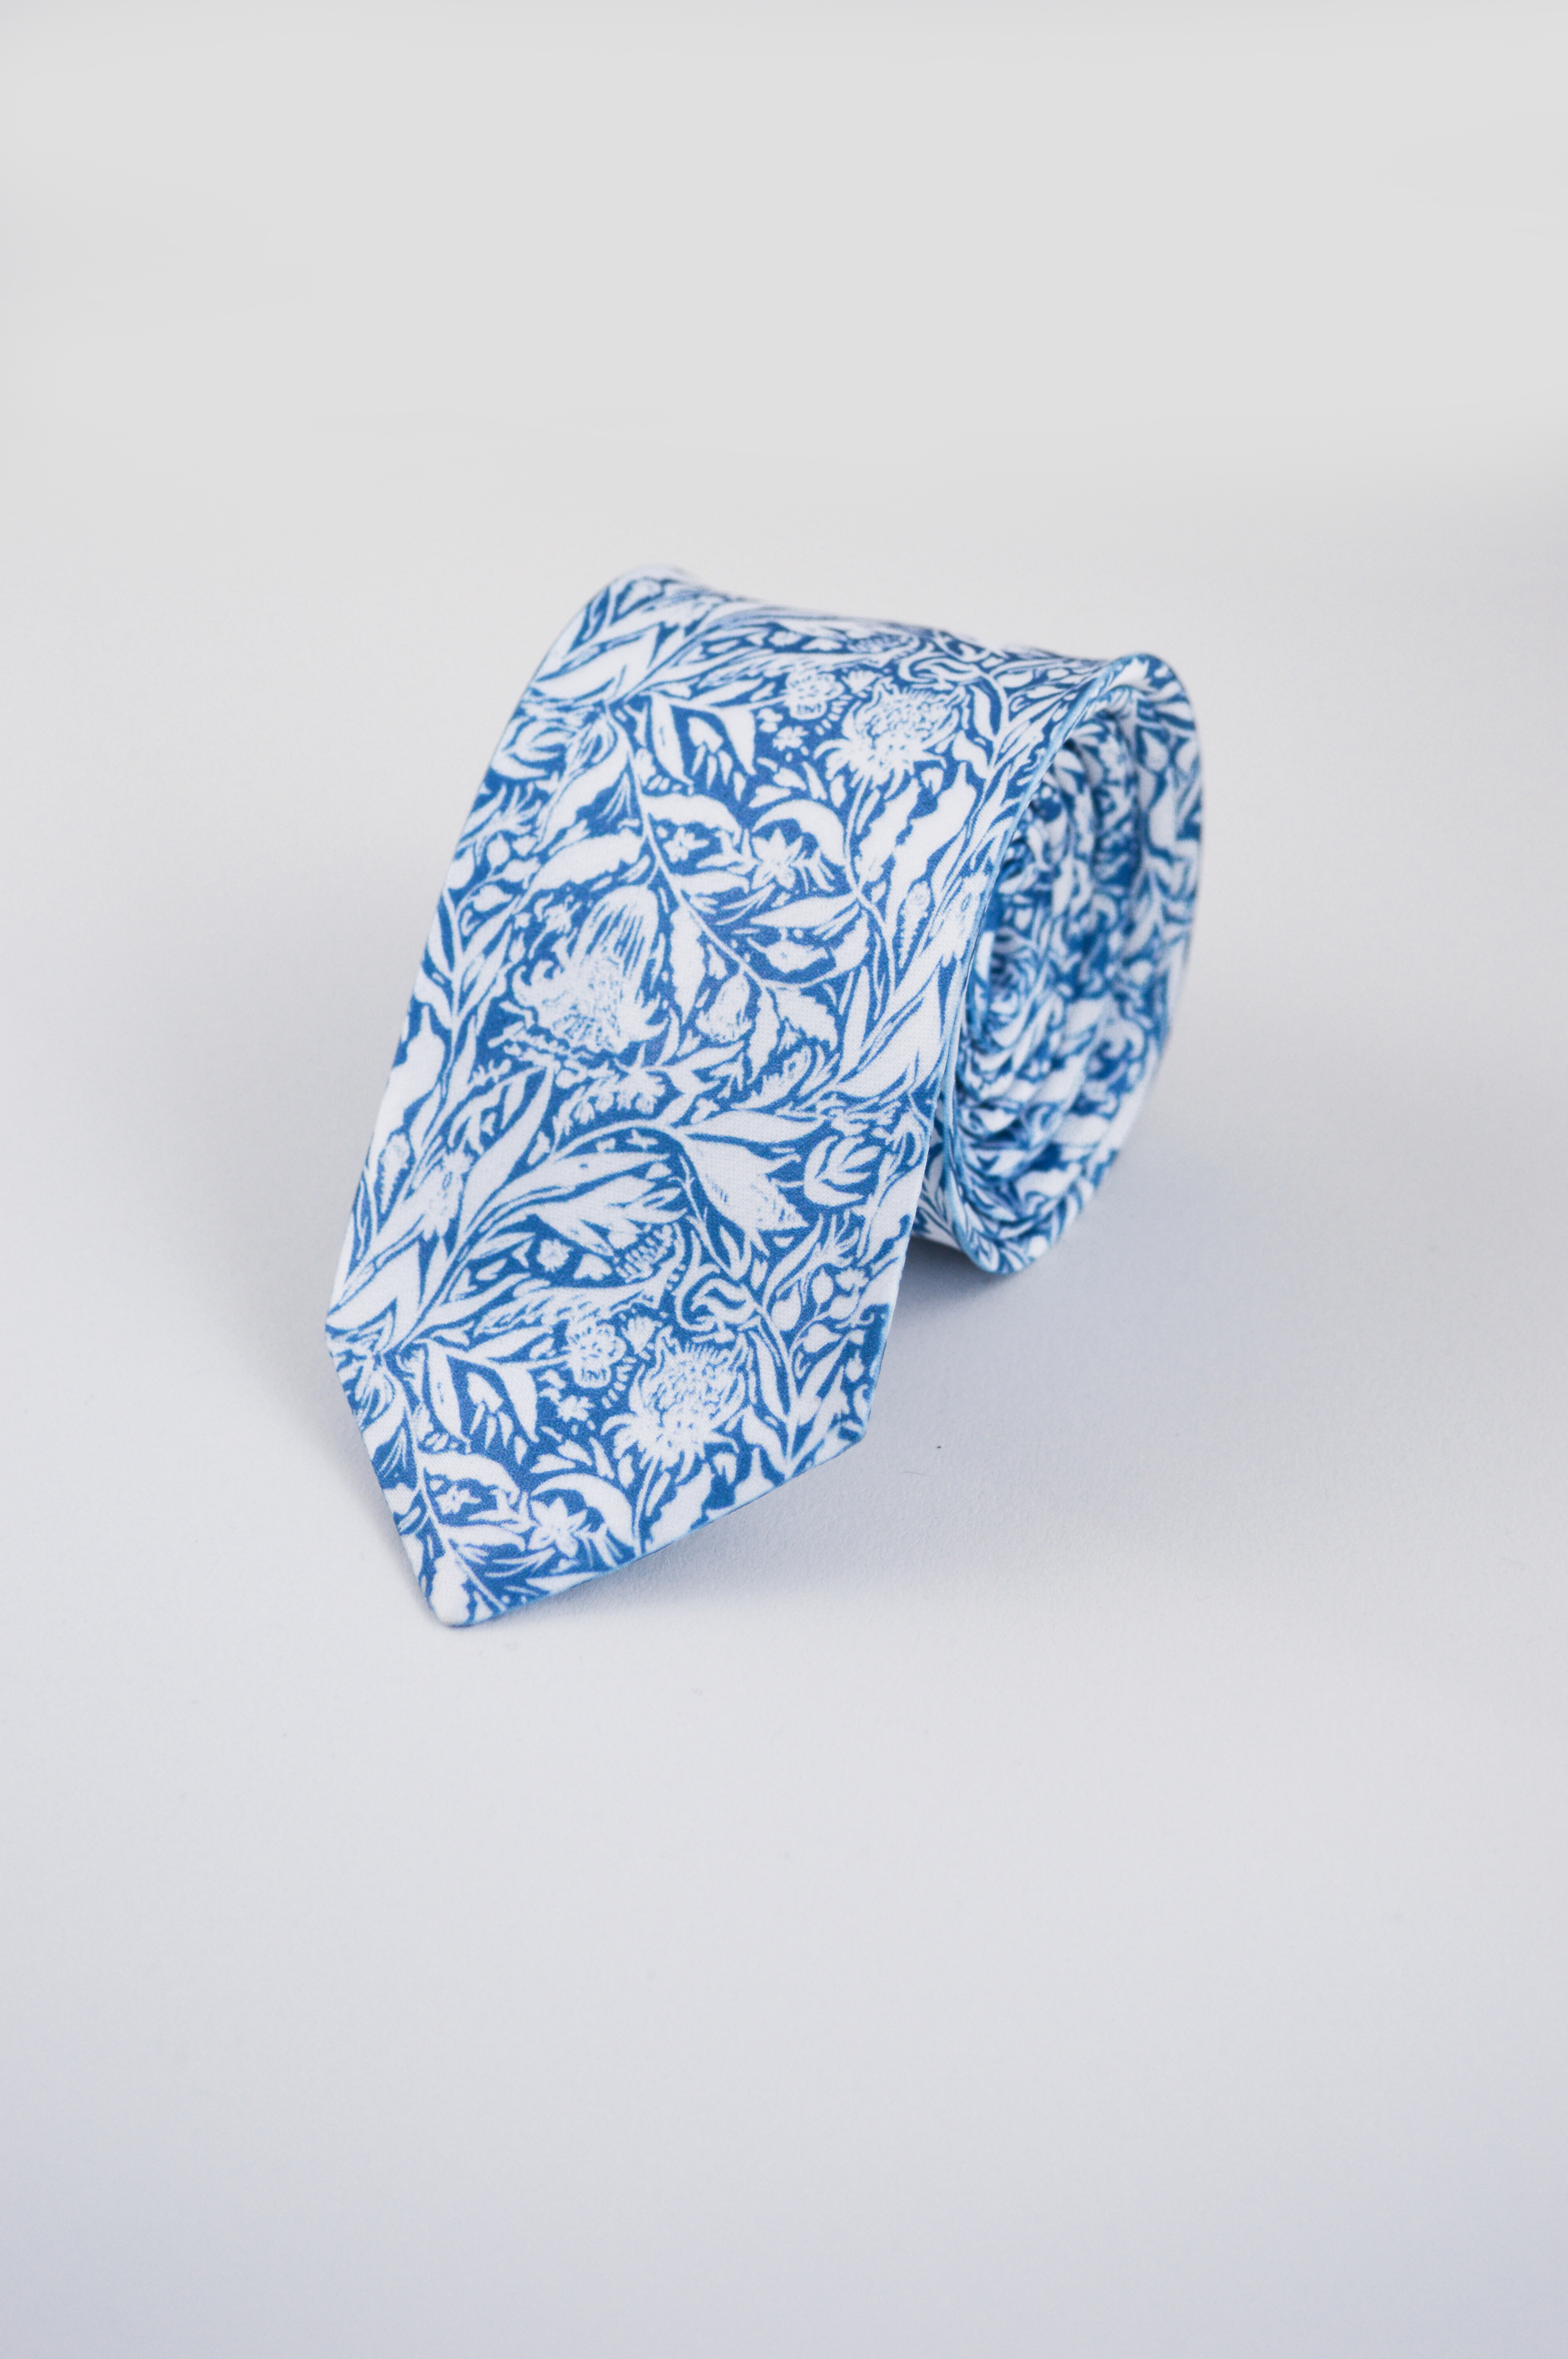 mens ties, mens skinny ties,scotland,glasgow,paisley,edinburgh,neck tie,necktie,neckties,blueprint,collection,print,textiles,josef mcfadden,brand,business,menswear,fashion,style,formal,smart casual,wedding,groom,blue,luxury,satin,handmade,made in britain,made in uk